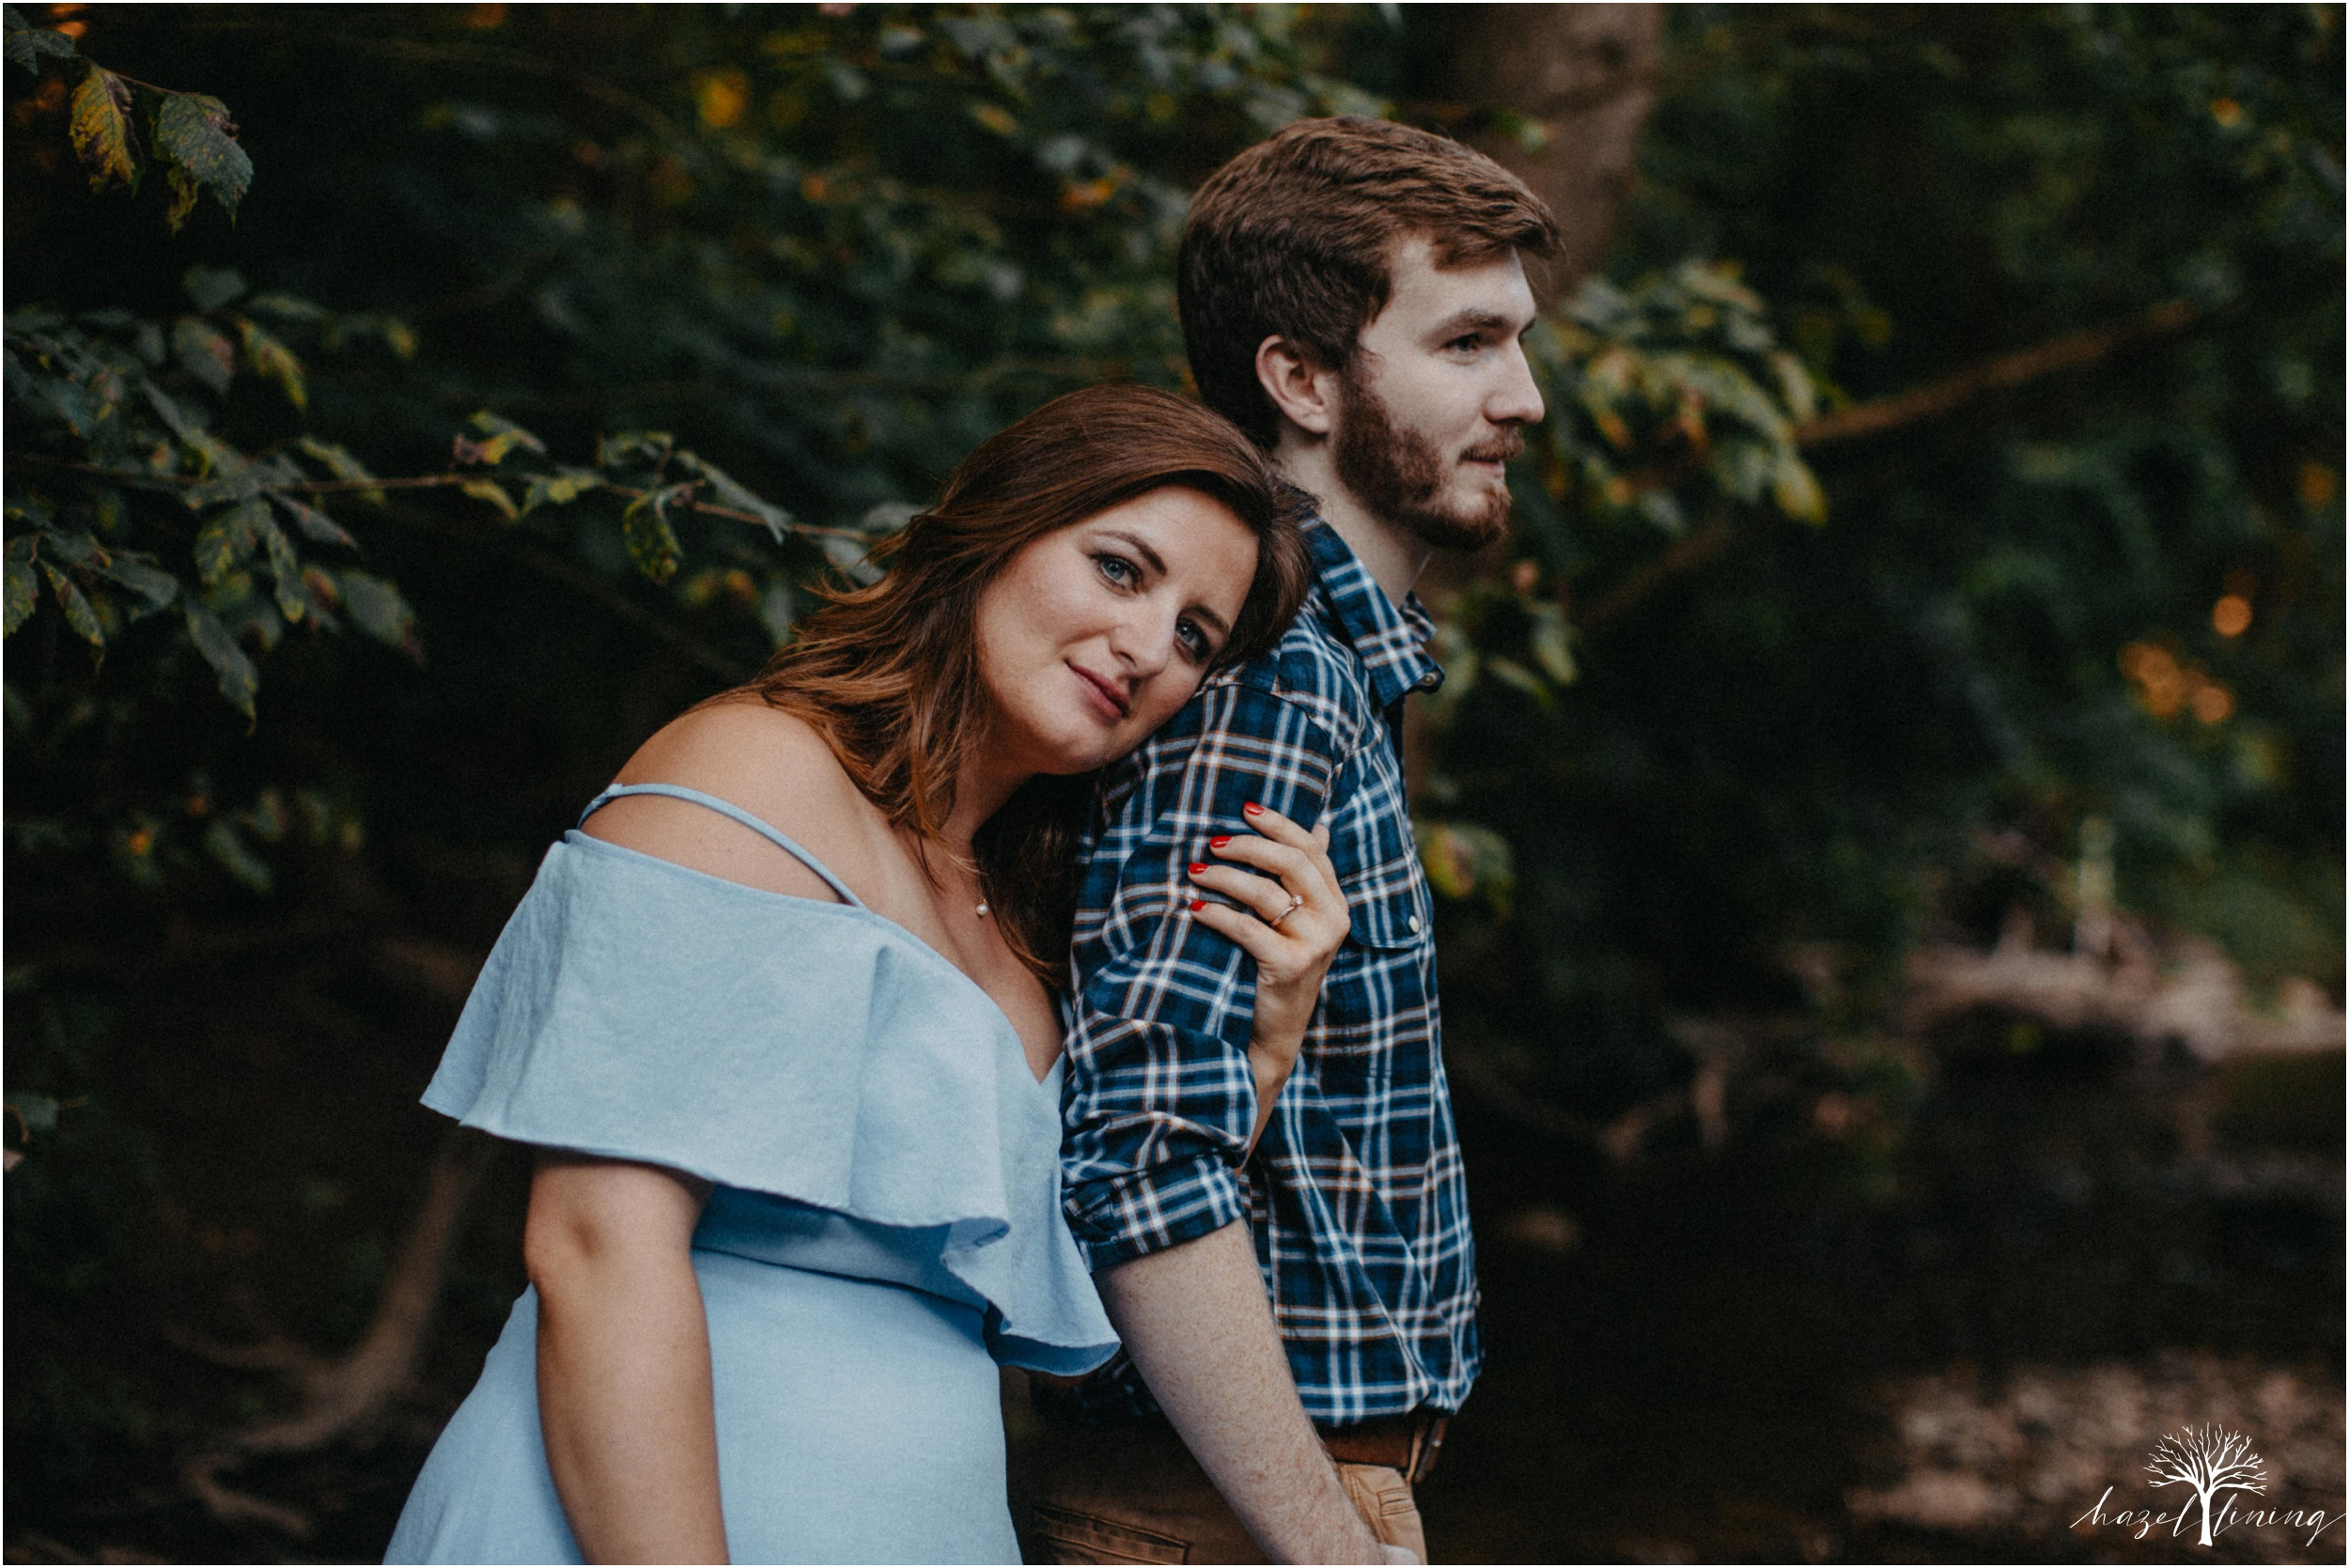 paige-kochey-chris-graham-valley-green-wissahickon-park-philadelphia-summer-engagement-session-hazel-lining-photography-destination-elopement-wedding-engagement-photography_0023.jpg